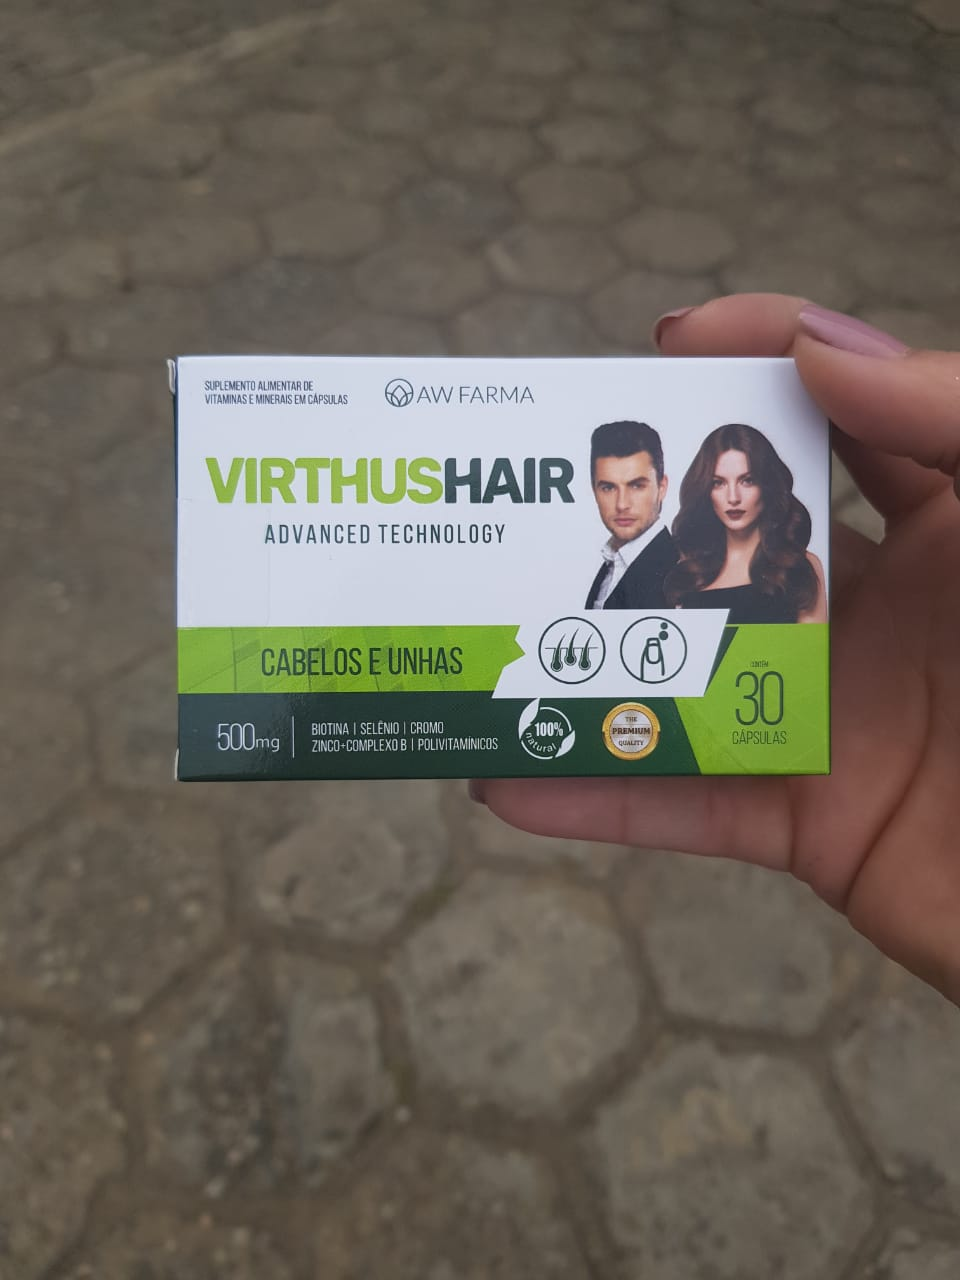 VirthusHair